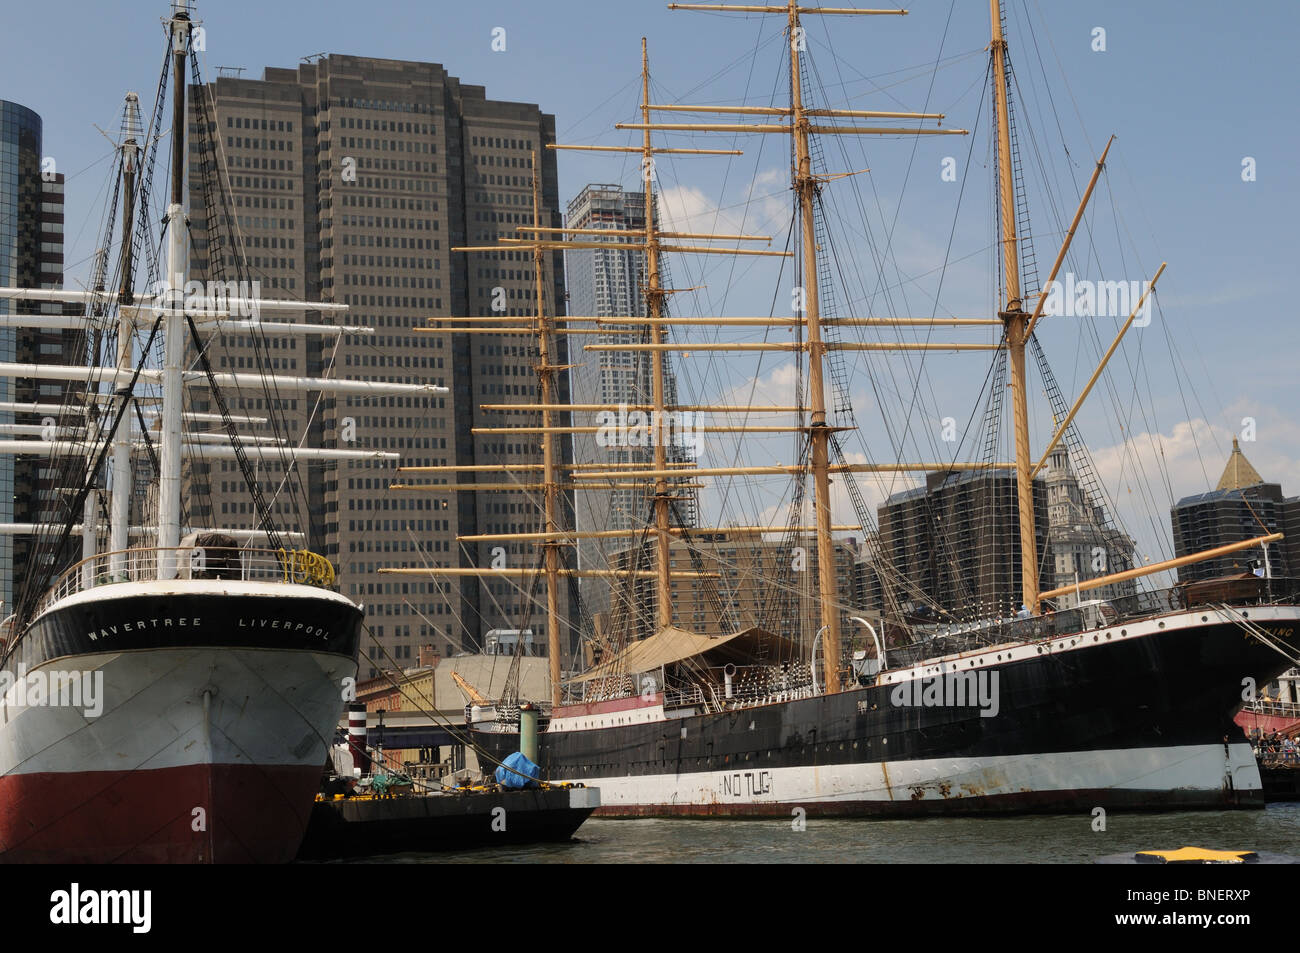 Two historic sailing ships, the Wavertree and the Peking are moored in the South Street Seaport in Lower Manhattan. - Stock Image